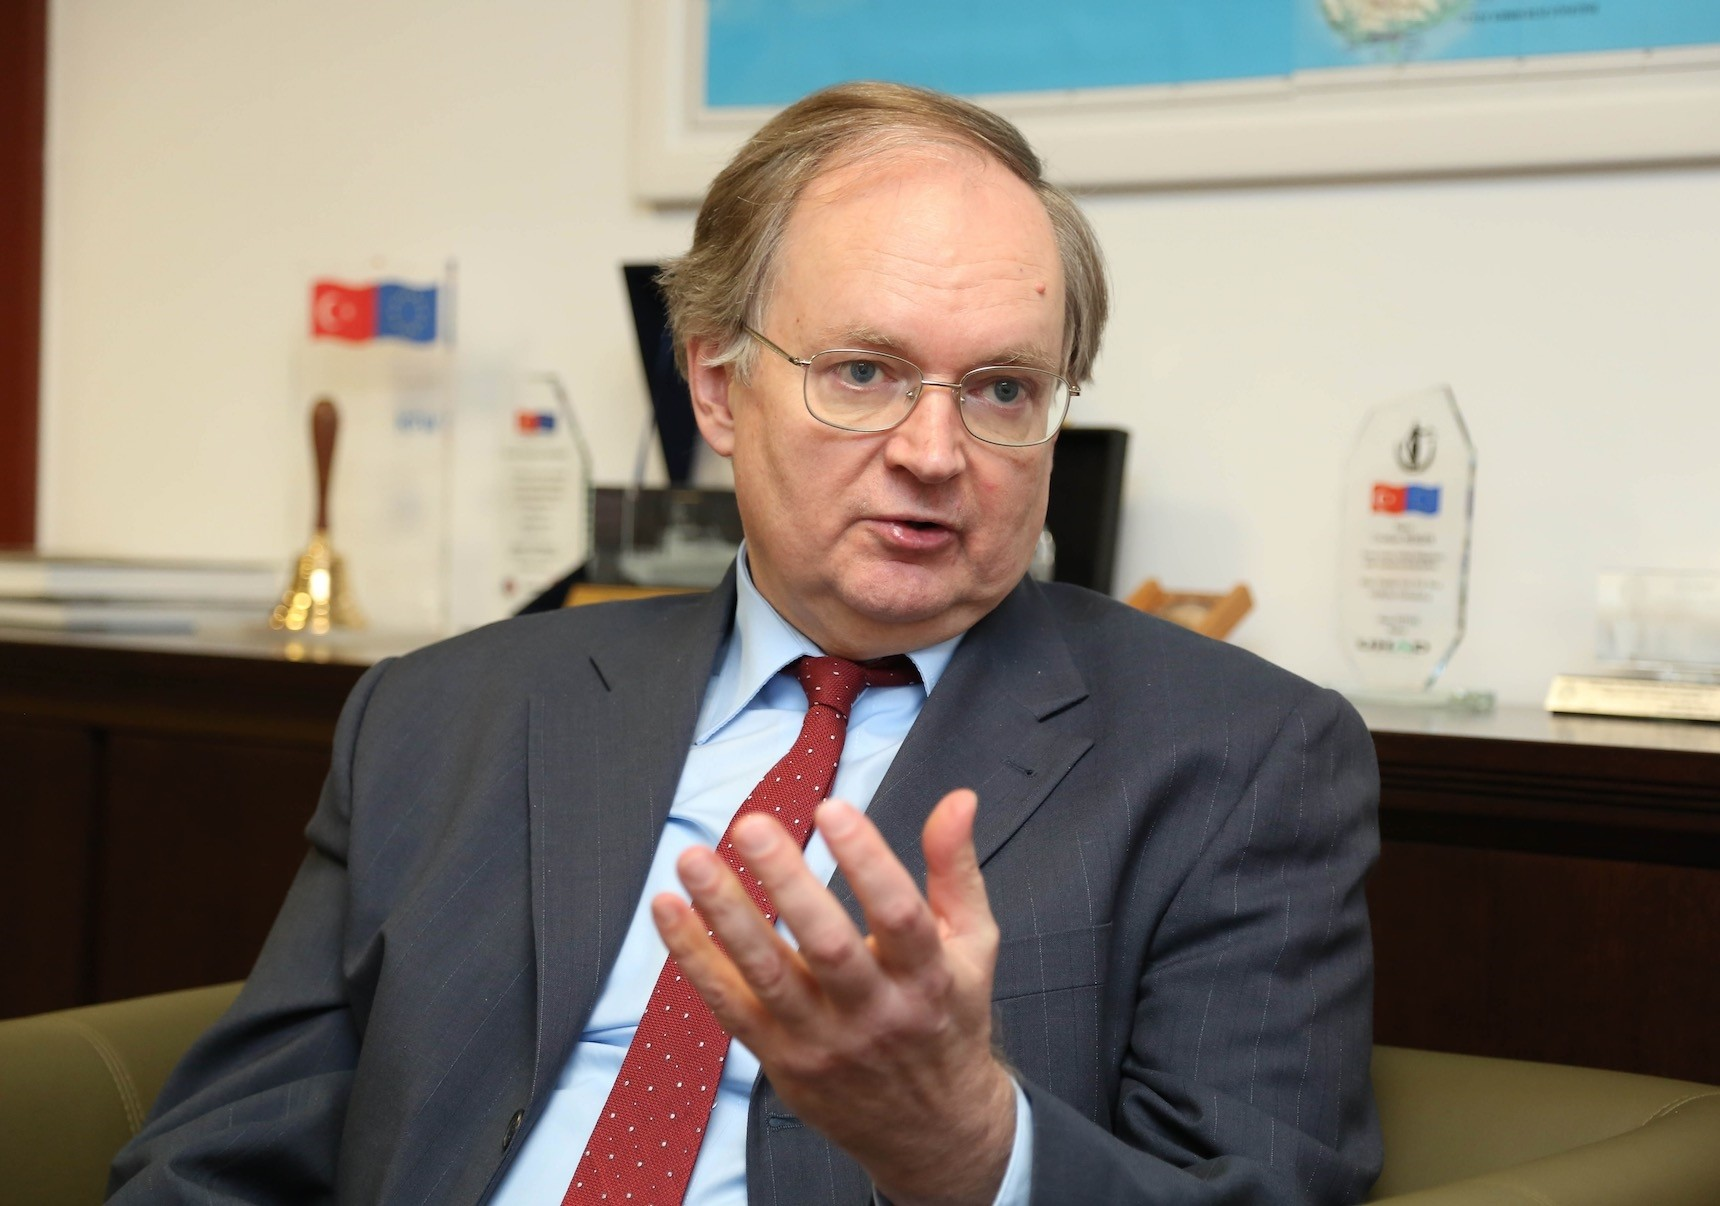 In addition to education and socio-economic support, the EUu2019s Christian Berger said some steps will be taken in health care, announcing that the construction of two state hospitals has already been agreed upon.